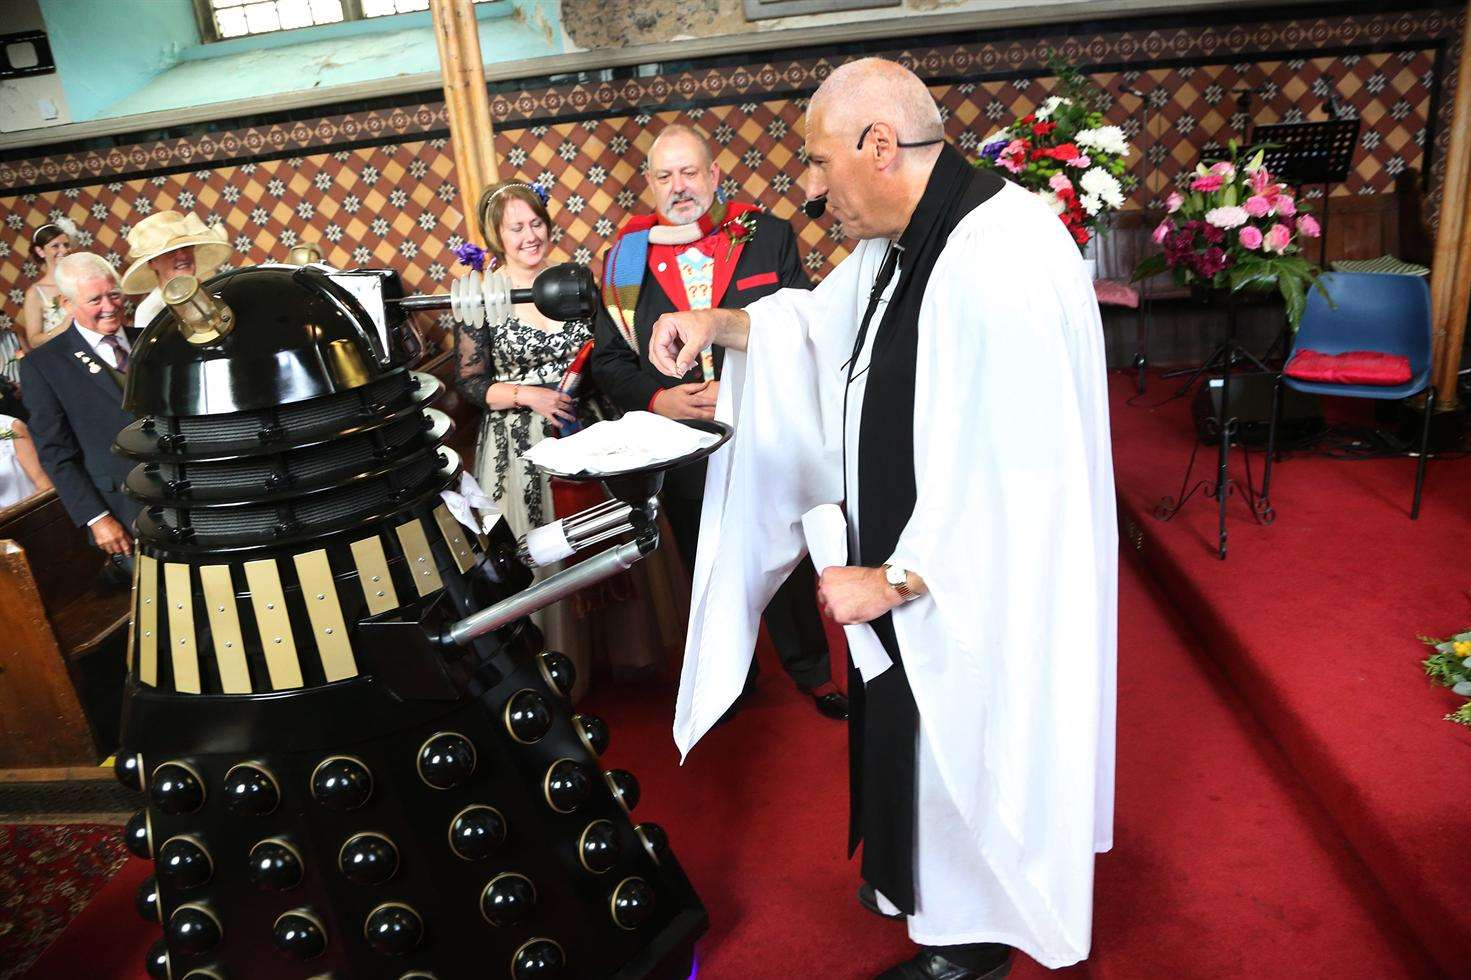 Fortunately the Dalek only interrupted the ceremony to provide the ring, handing it here to rector of St Peter & St Paul's Graham Herbert.